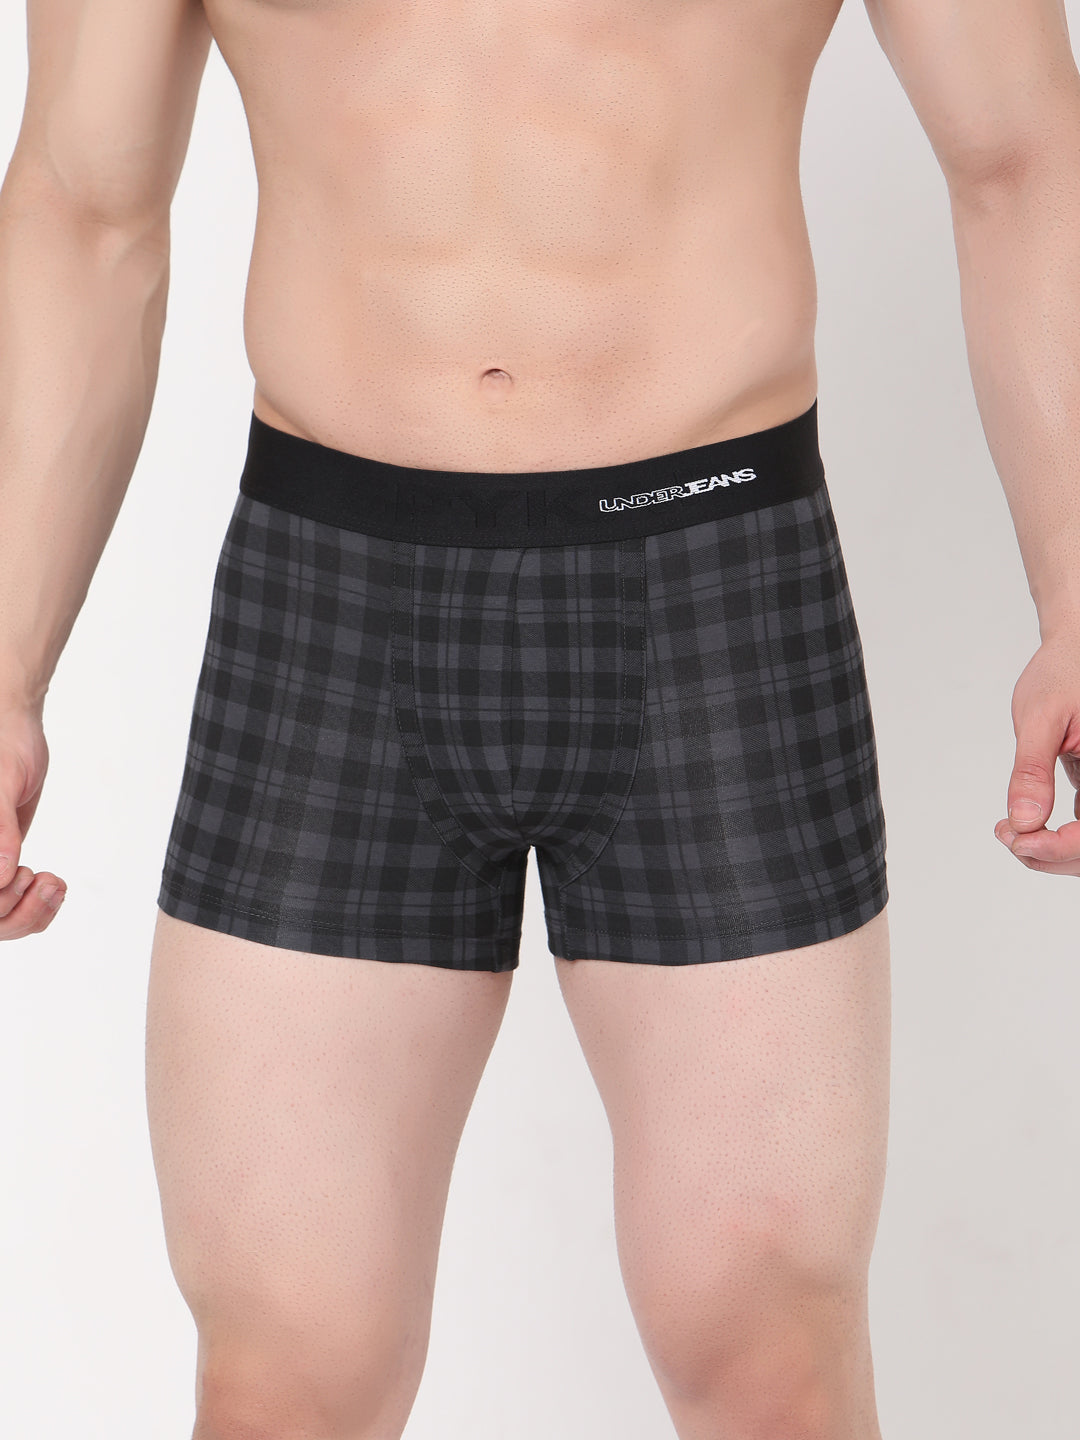 Underjeans Black-Check Cotton Trunks